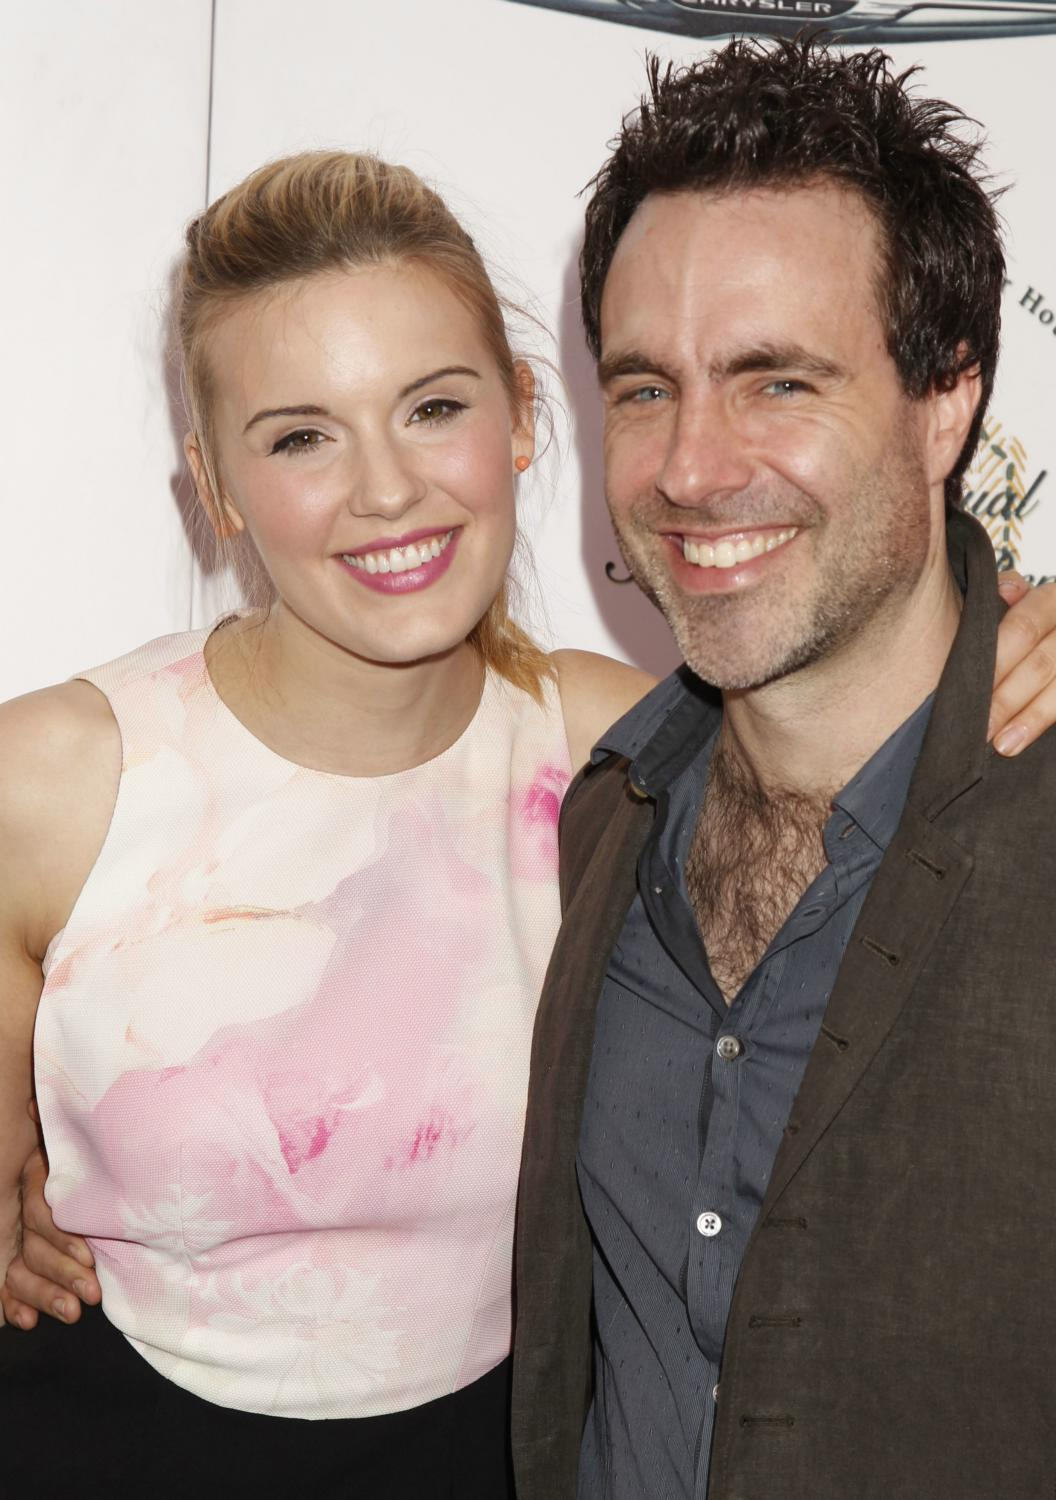 who dating maggie grace The duo first met on the set of lost in 2004 and began dating after they both got killed off on the show in 2006 who has ian somerhalder dated maggie grace.